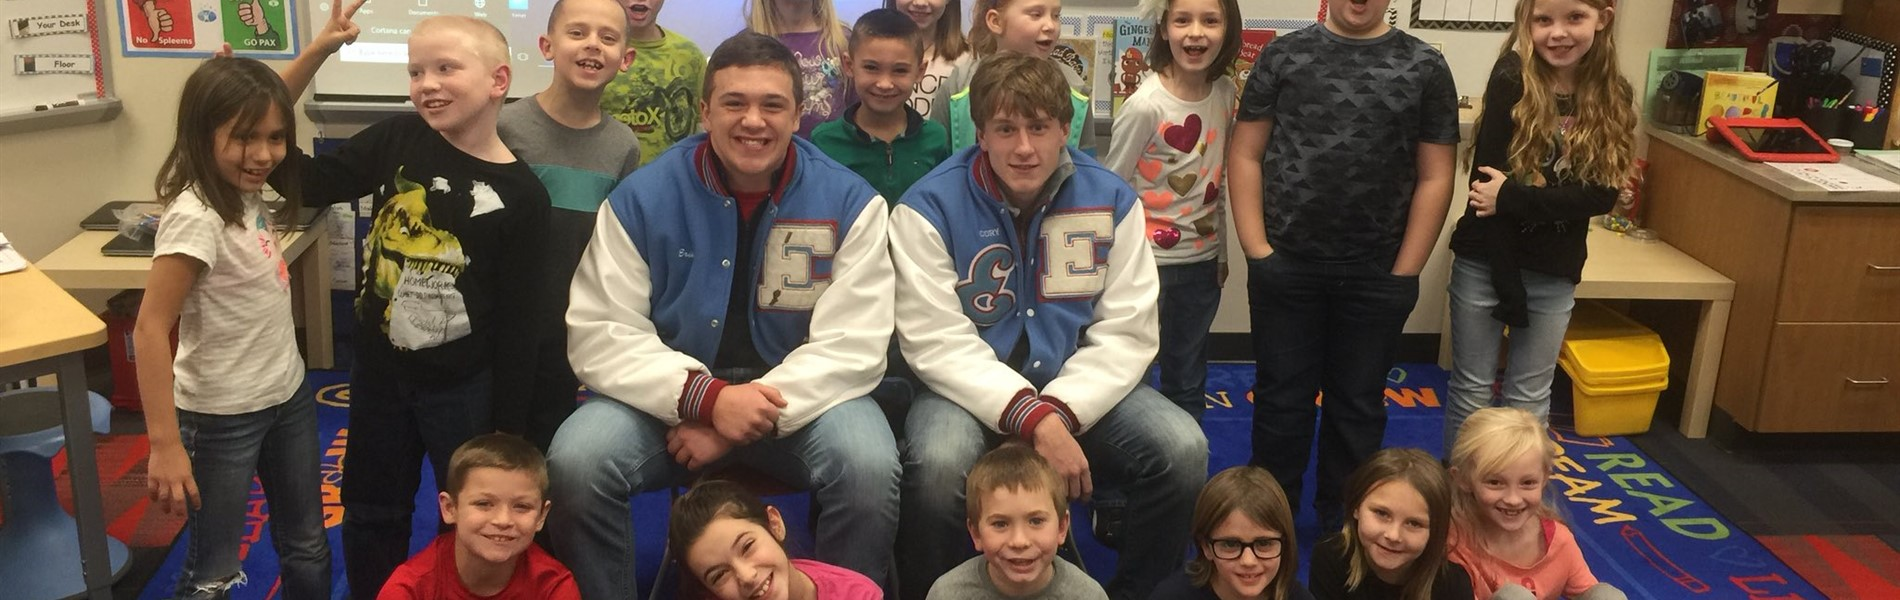 2nd graders get a visit from EHS varsity football players